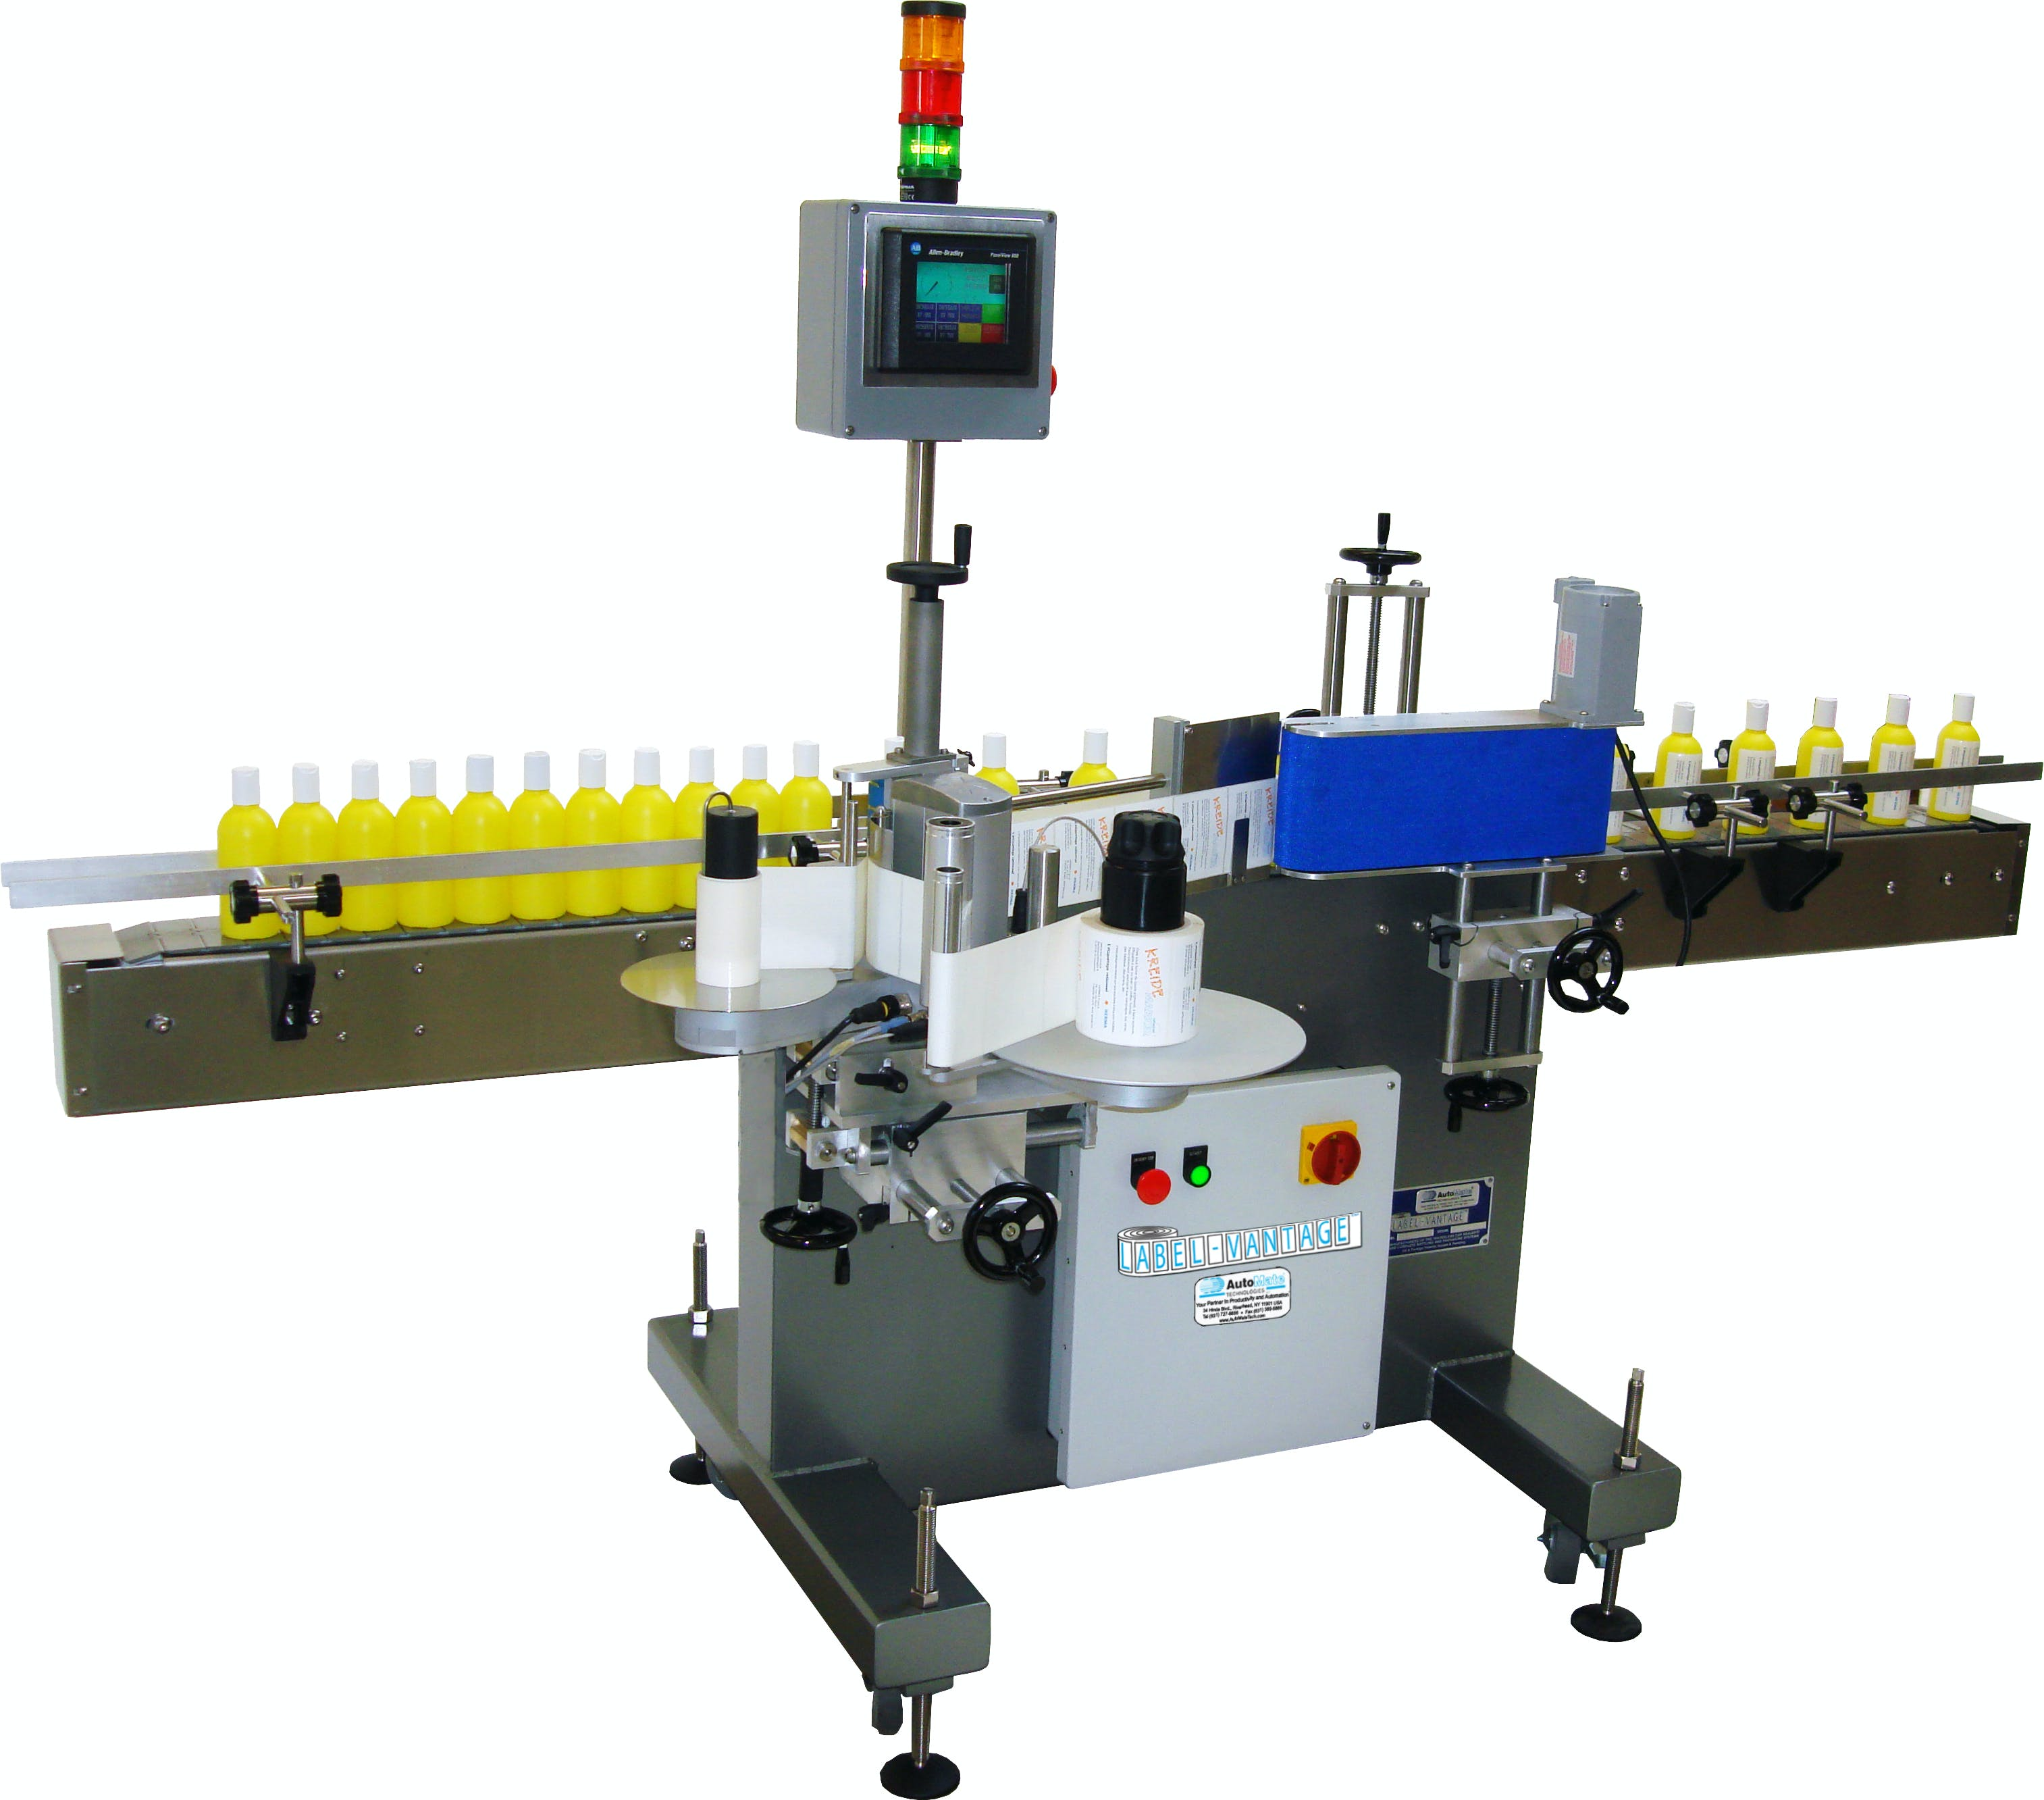 AM-LW-40 Wrap Labeler Bottle labeler sold by Kaps-All Packaging Systems, Inc.